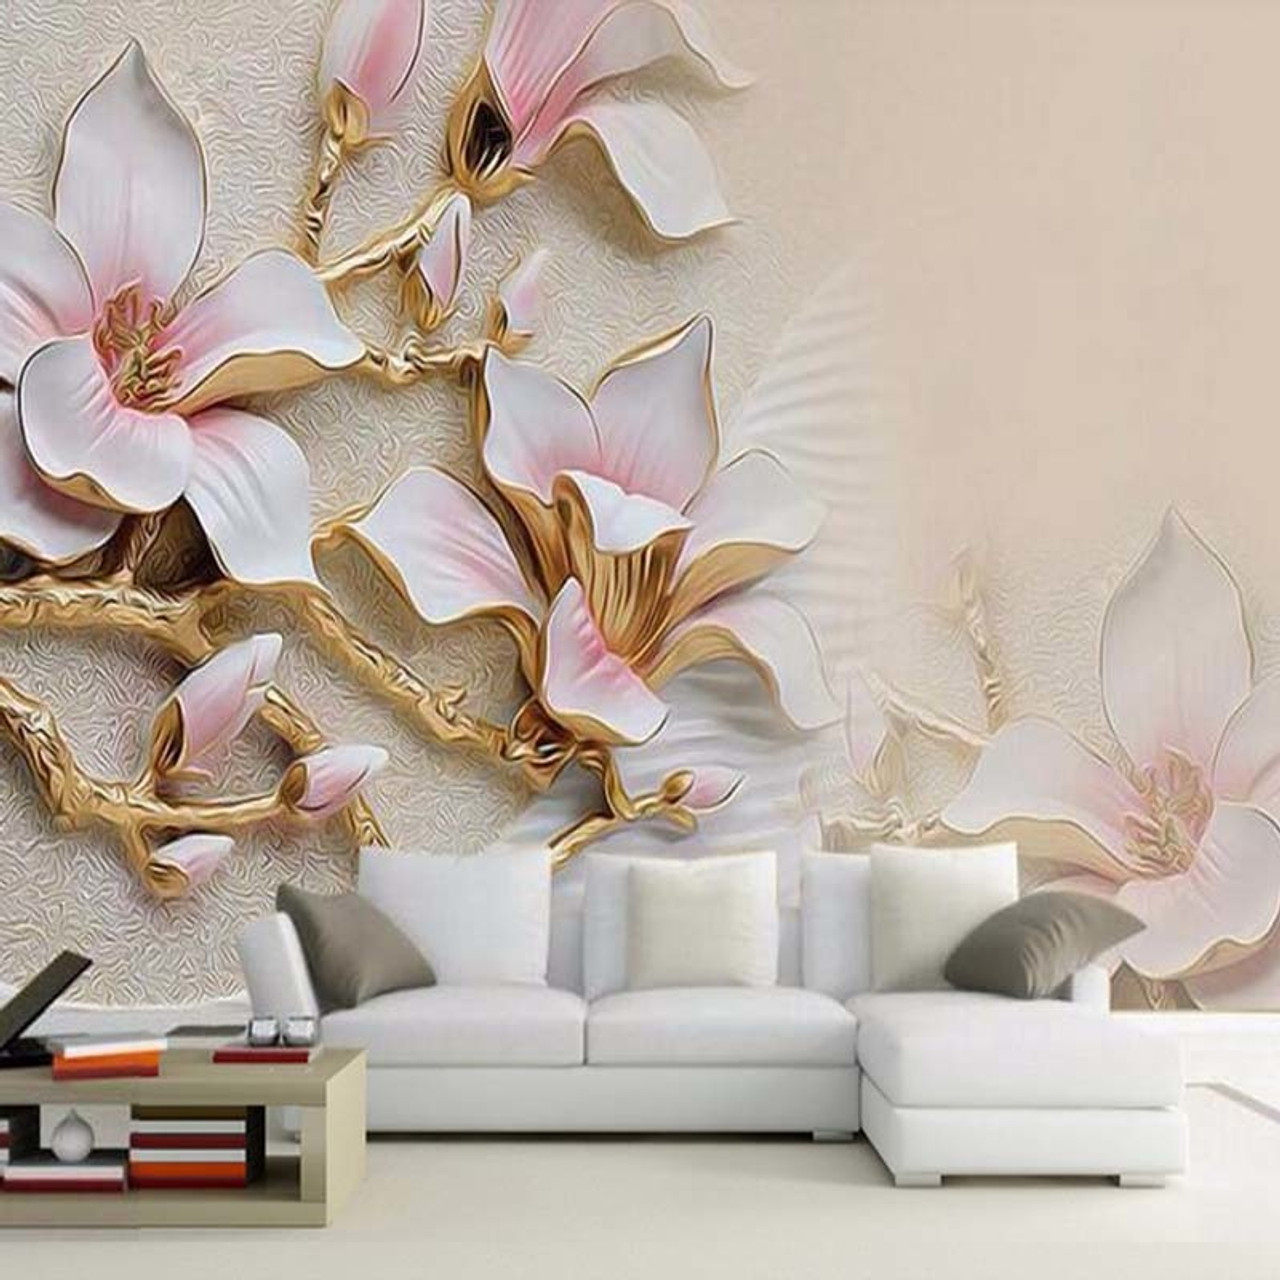 Custom 3d Mural Wallpaper Stereo Relief Magnolia Flower Wall Art